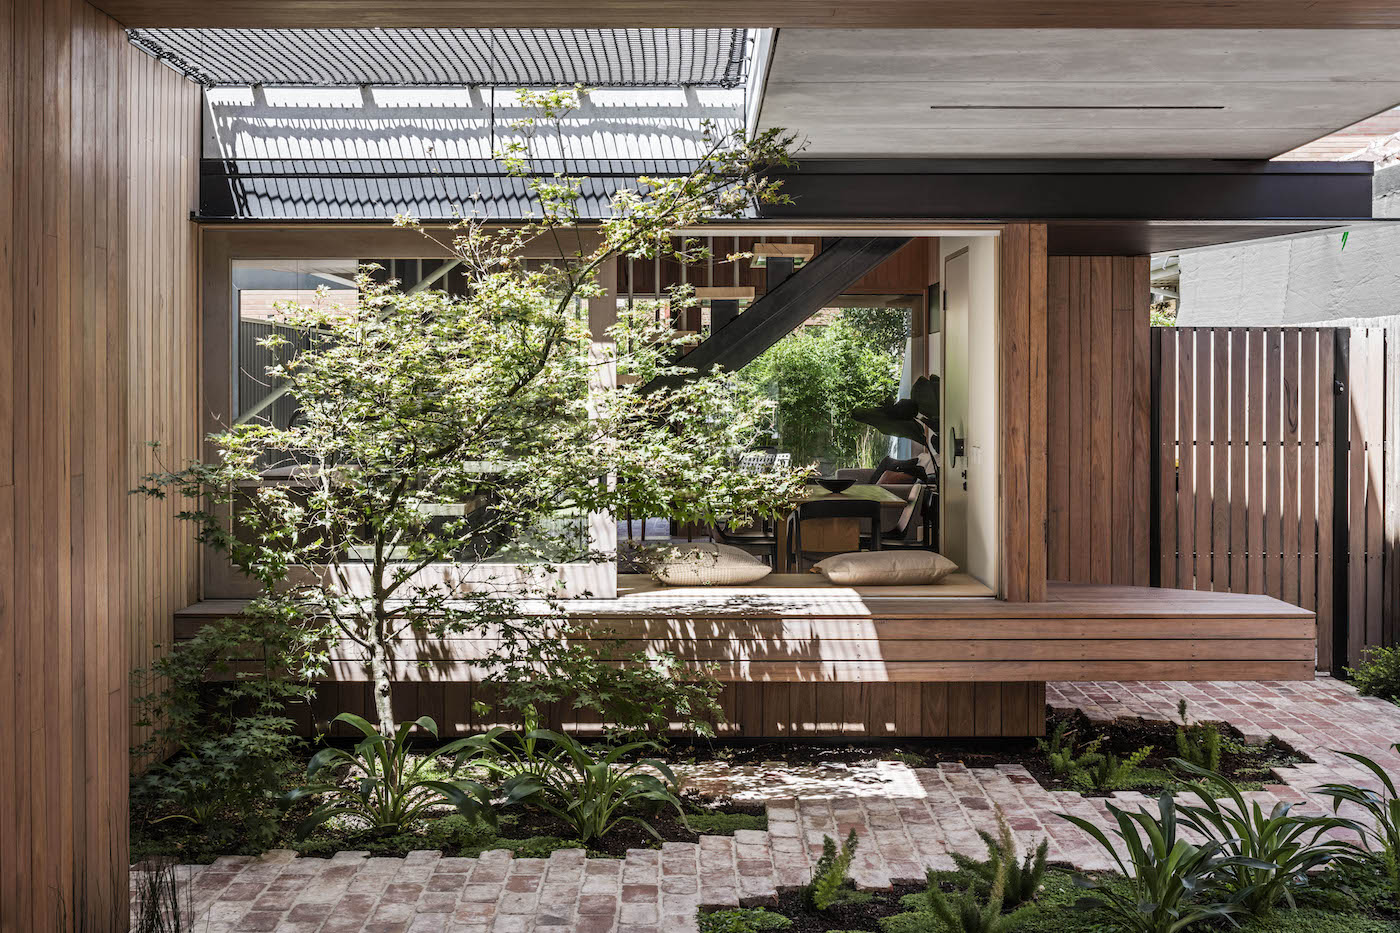 Courtyard with recycled brick pavers and timber walls